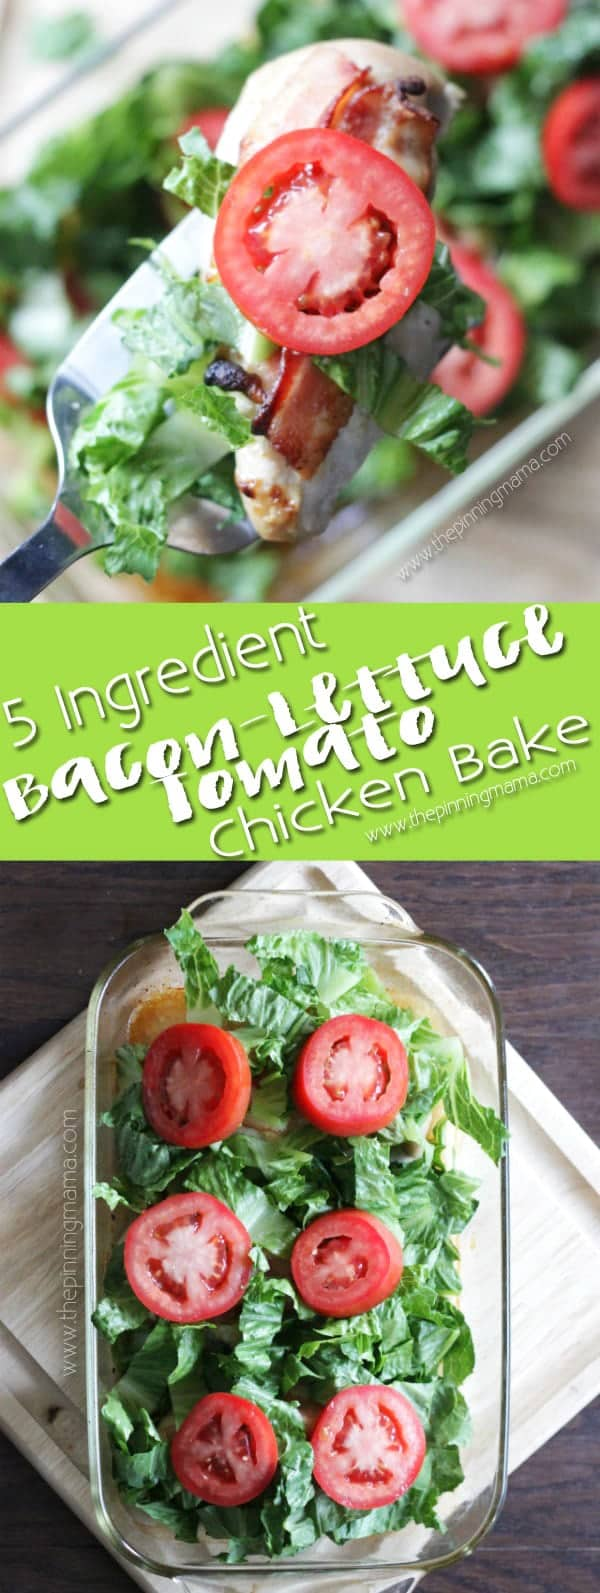 BLT Chicken Bake - Easy week night dinner recipe. Only 5 ingredients and minutes of prep to a hot, fresh and DELICIOUS chicken dinner baked in a casserole dish. A new twist on the classic bacon, lettuce, and tomato flavor combo!